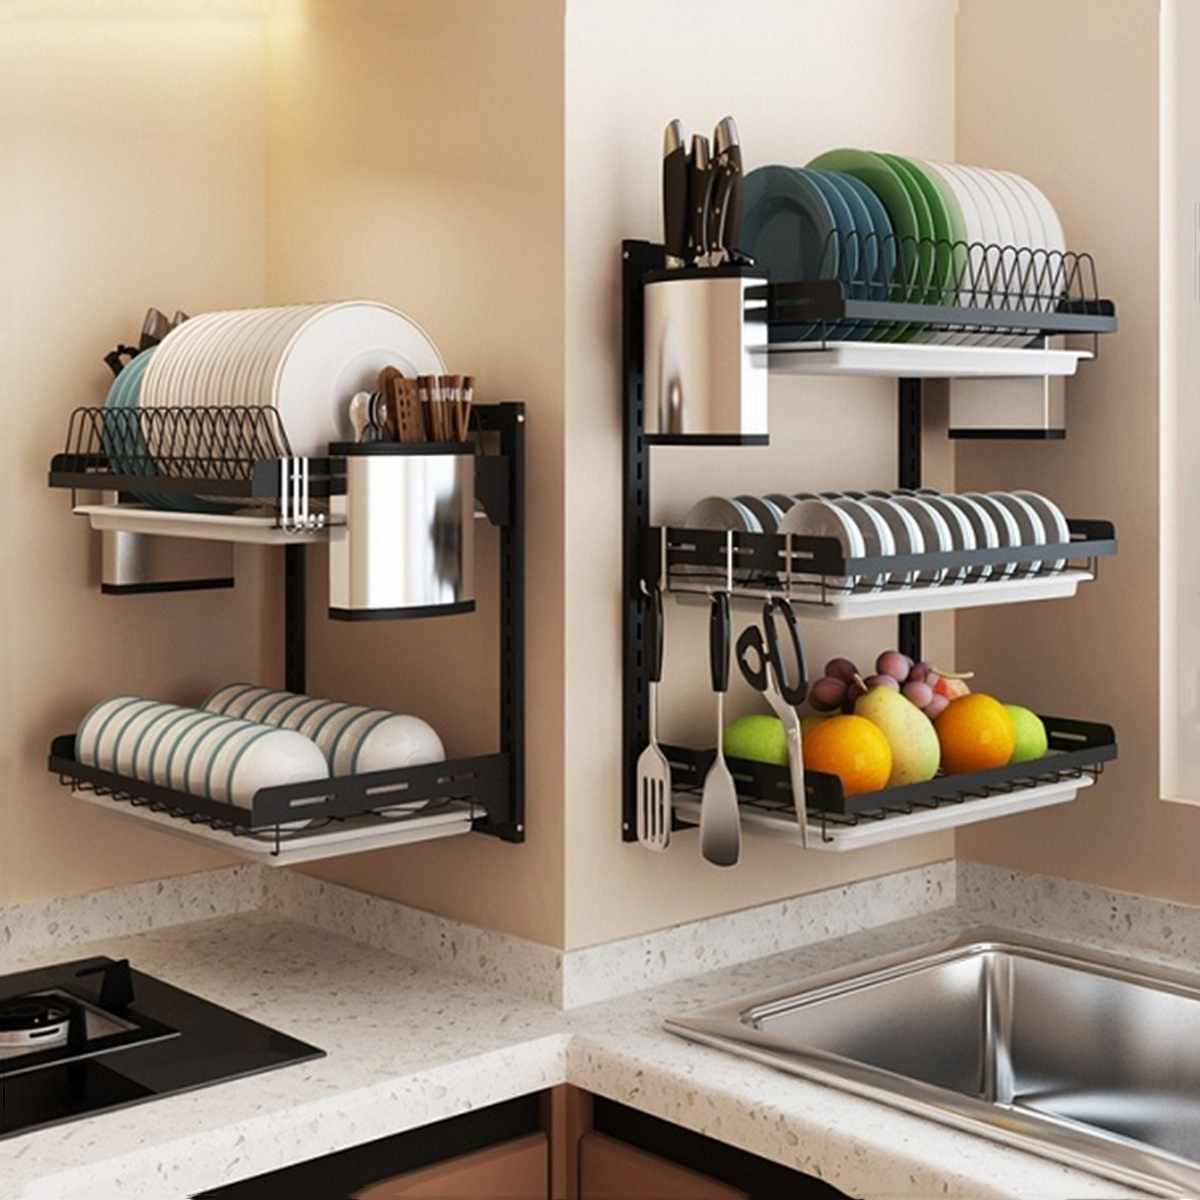 New 304 Stainless Steel Kitchen Dish Rack Plate Cutlery Cup Dish Drainer Drying Rack Wall Mount Kitchen Organizer Storage Holder